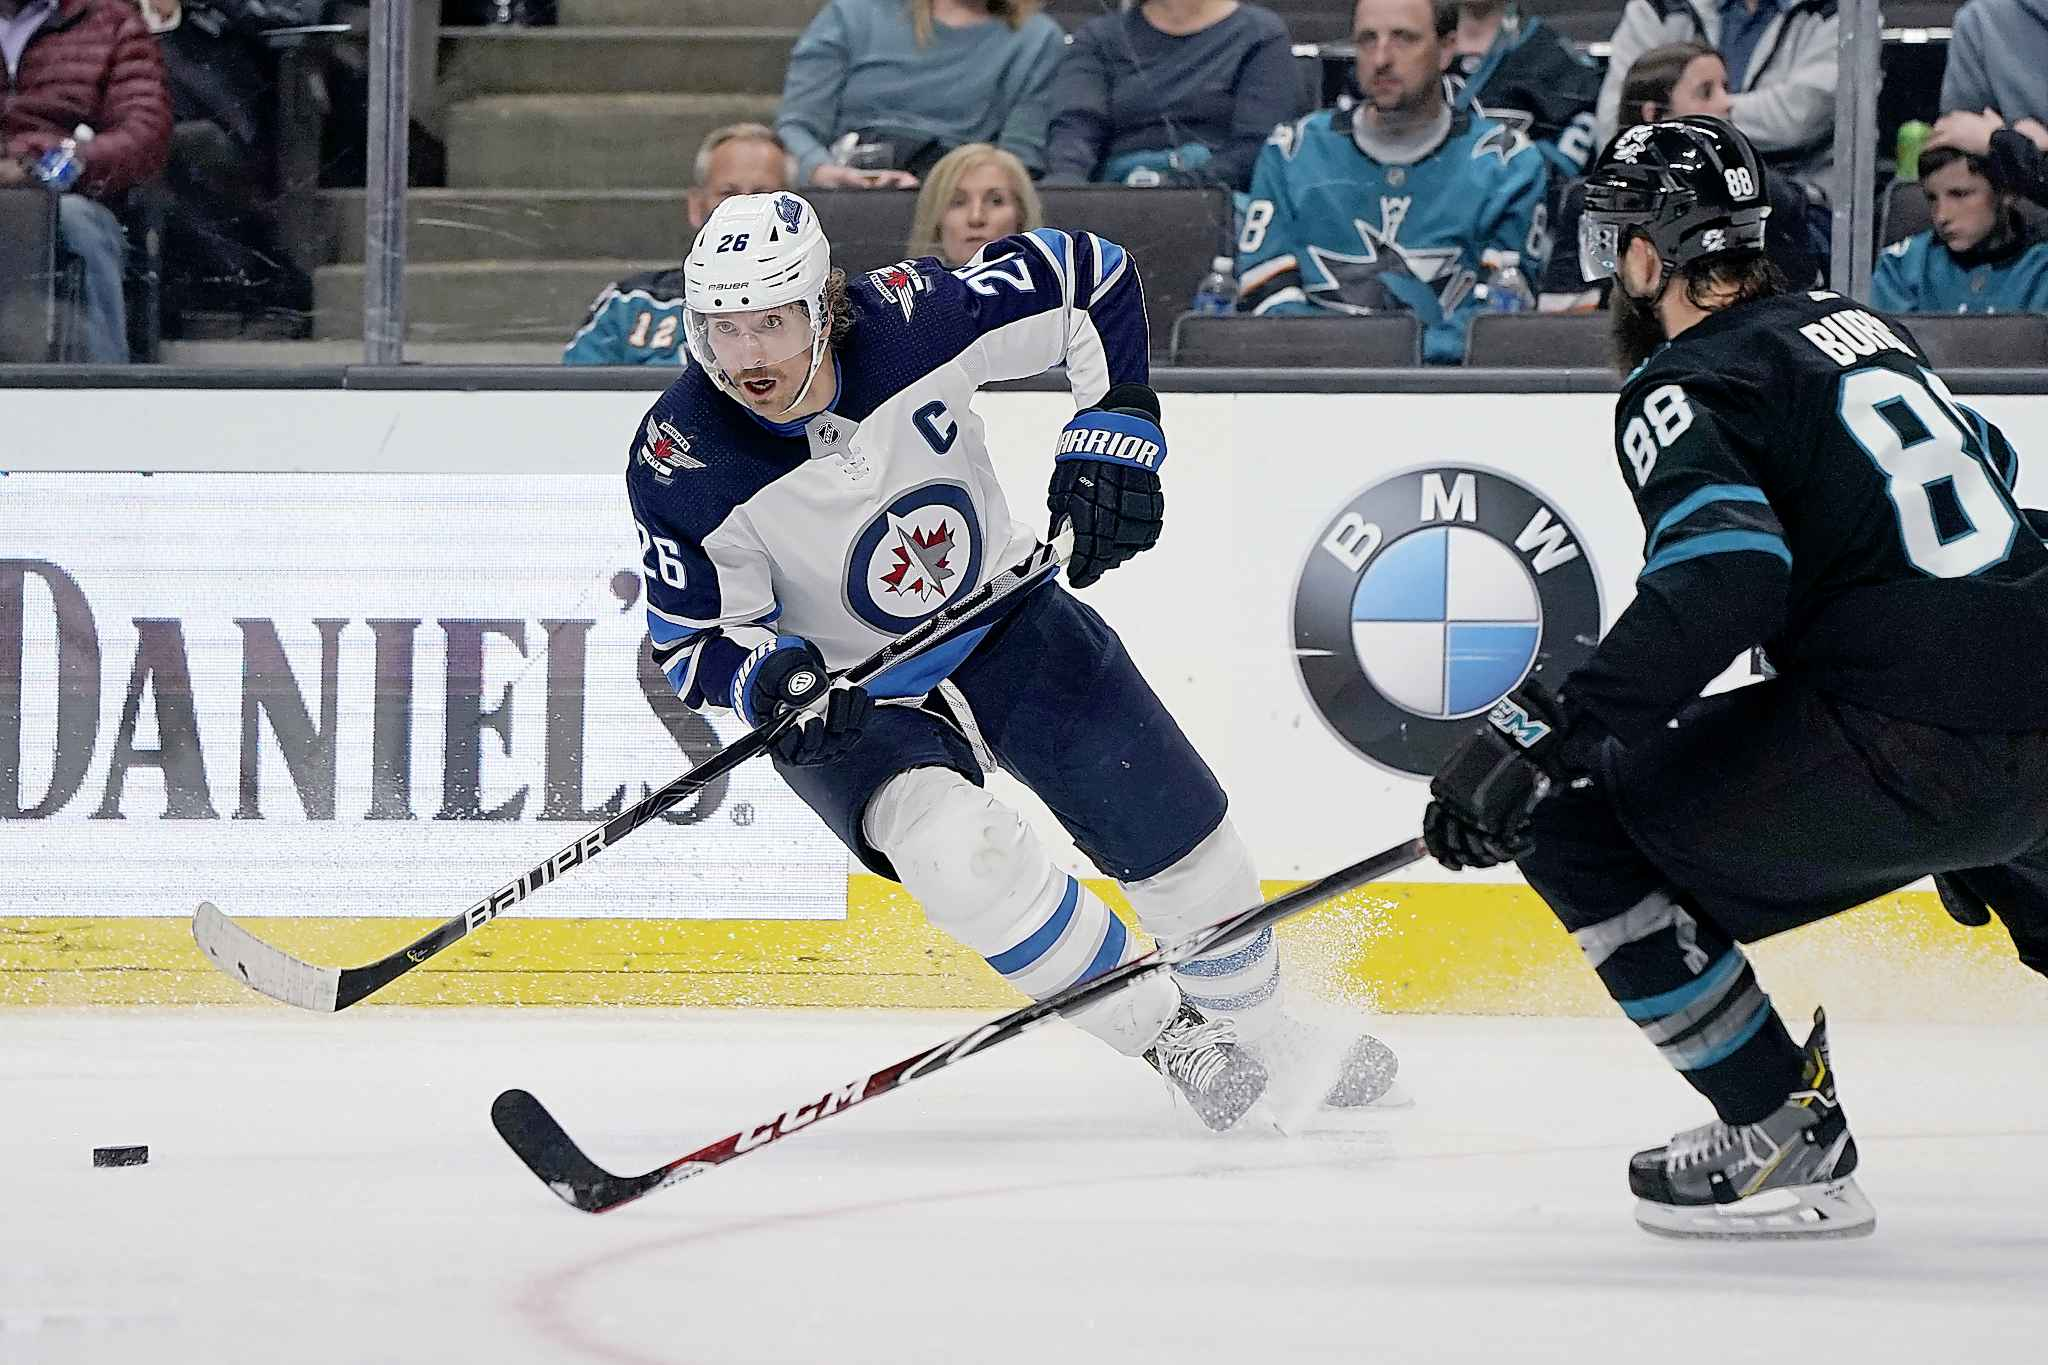 Winnipeg Jets' Blake Wheeler cuts to the middle against San Jose Sharks defenceman Brent Burns during the second period in San Jose, Friday.